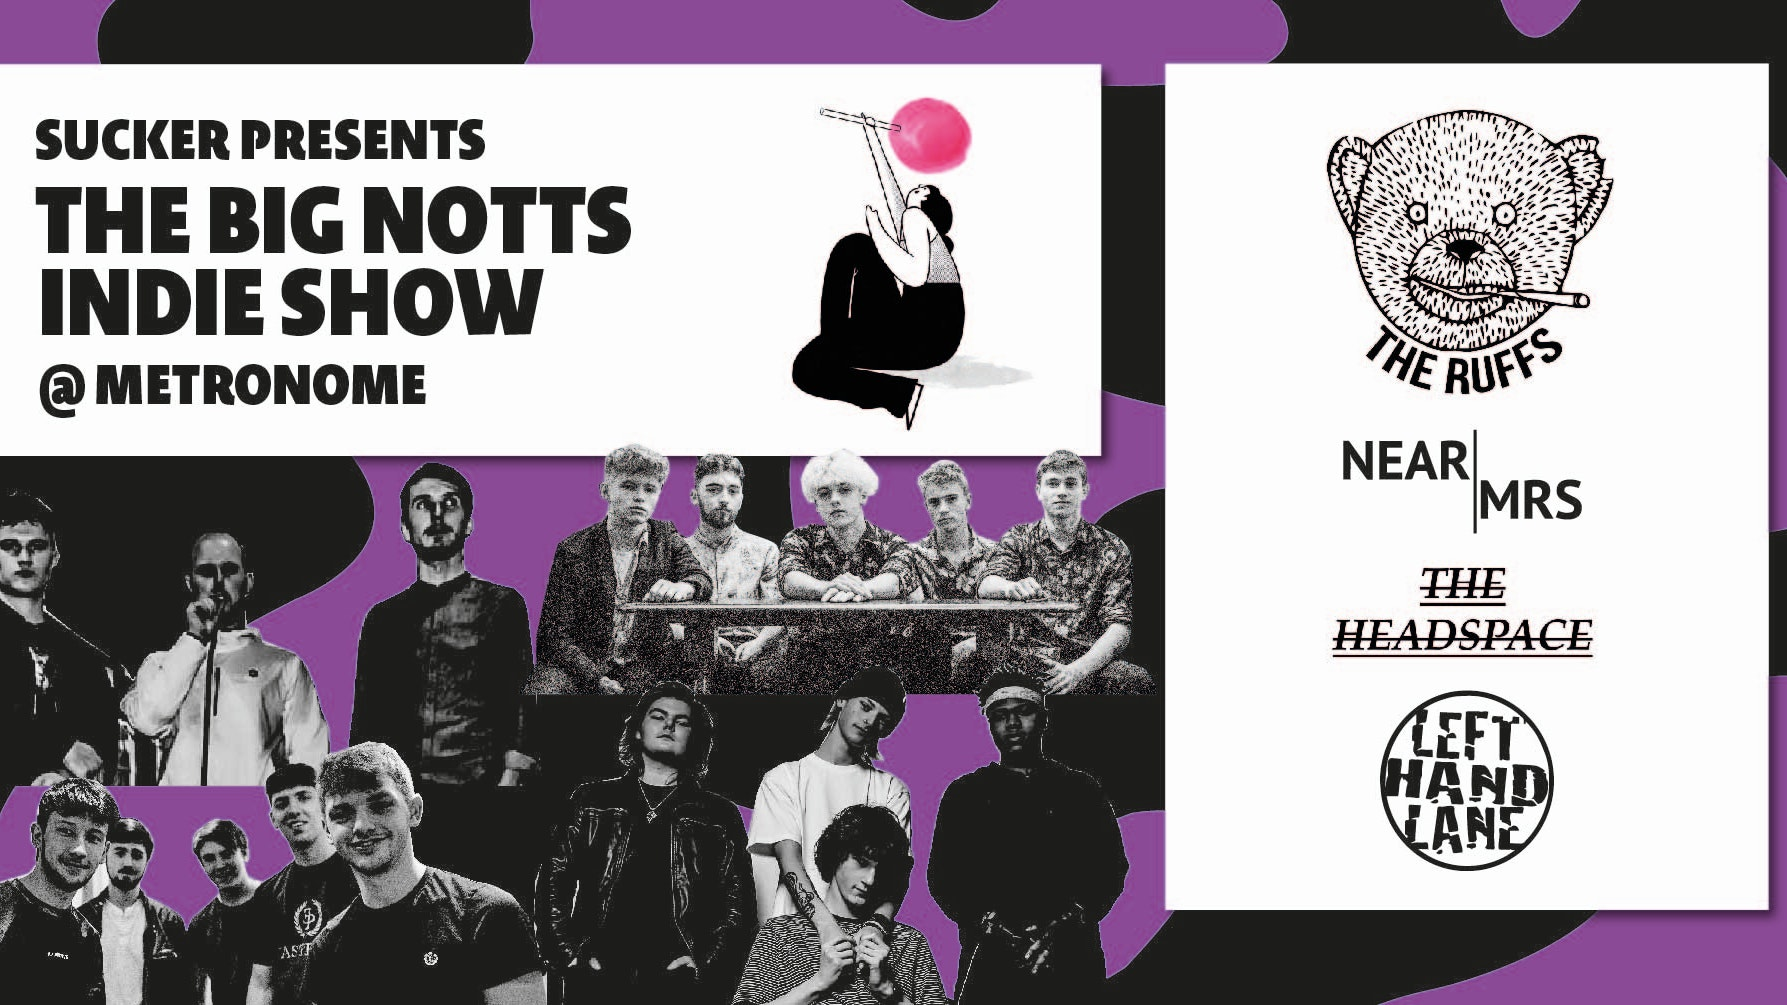 The Big Notts Indie Show at Metronome